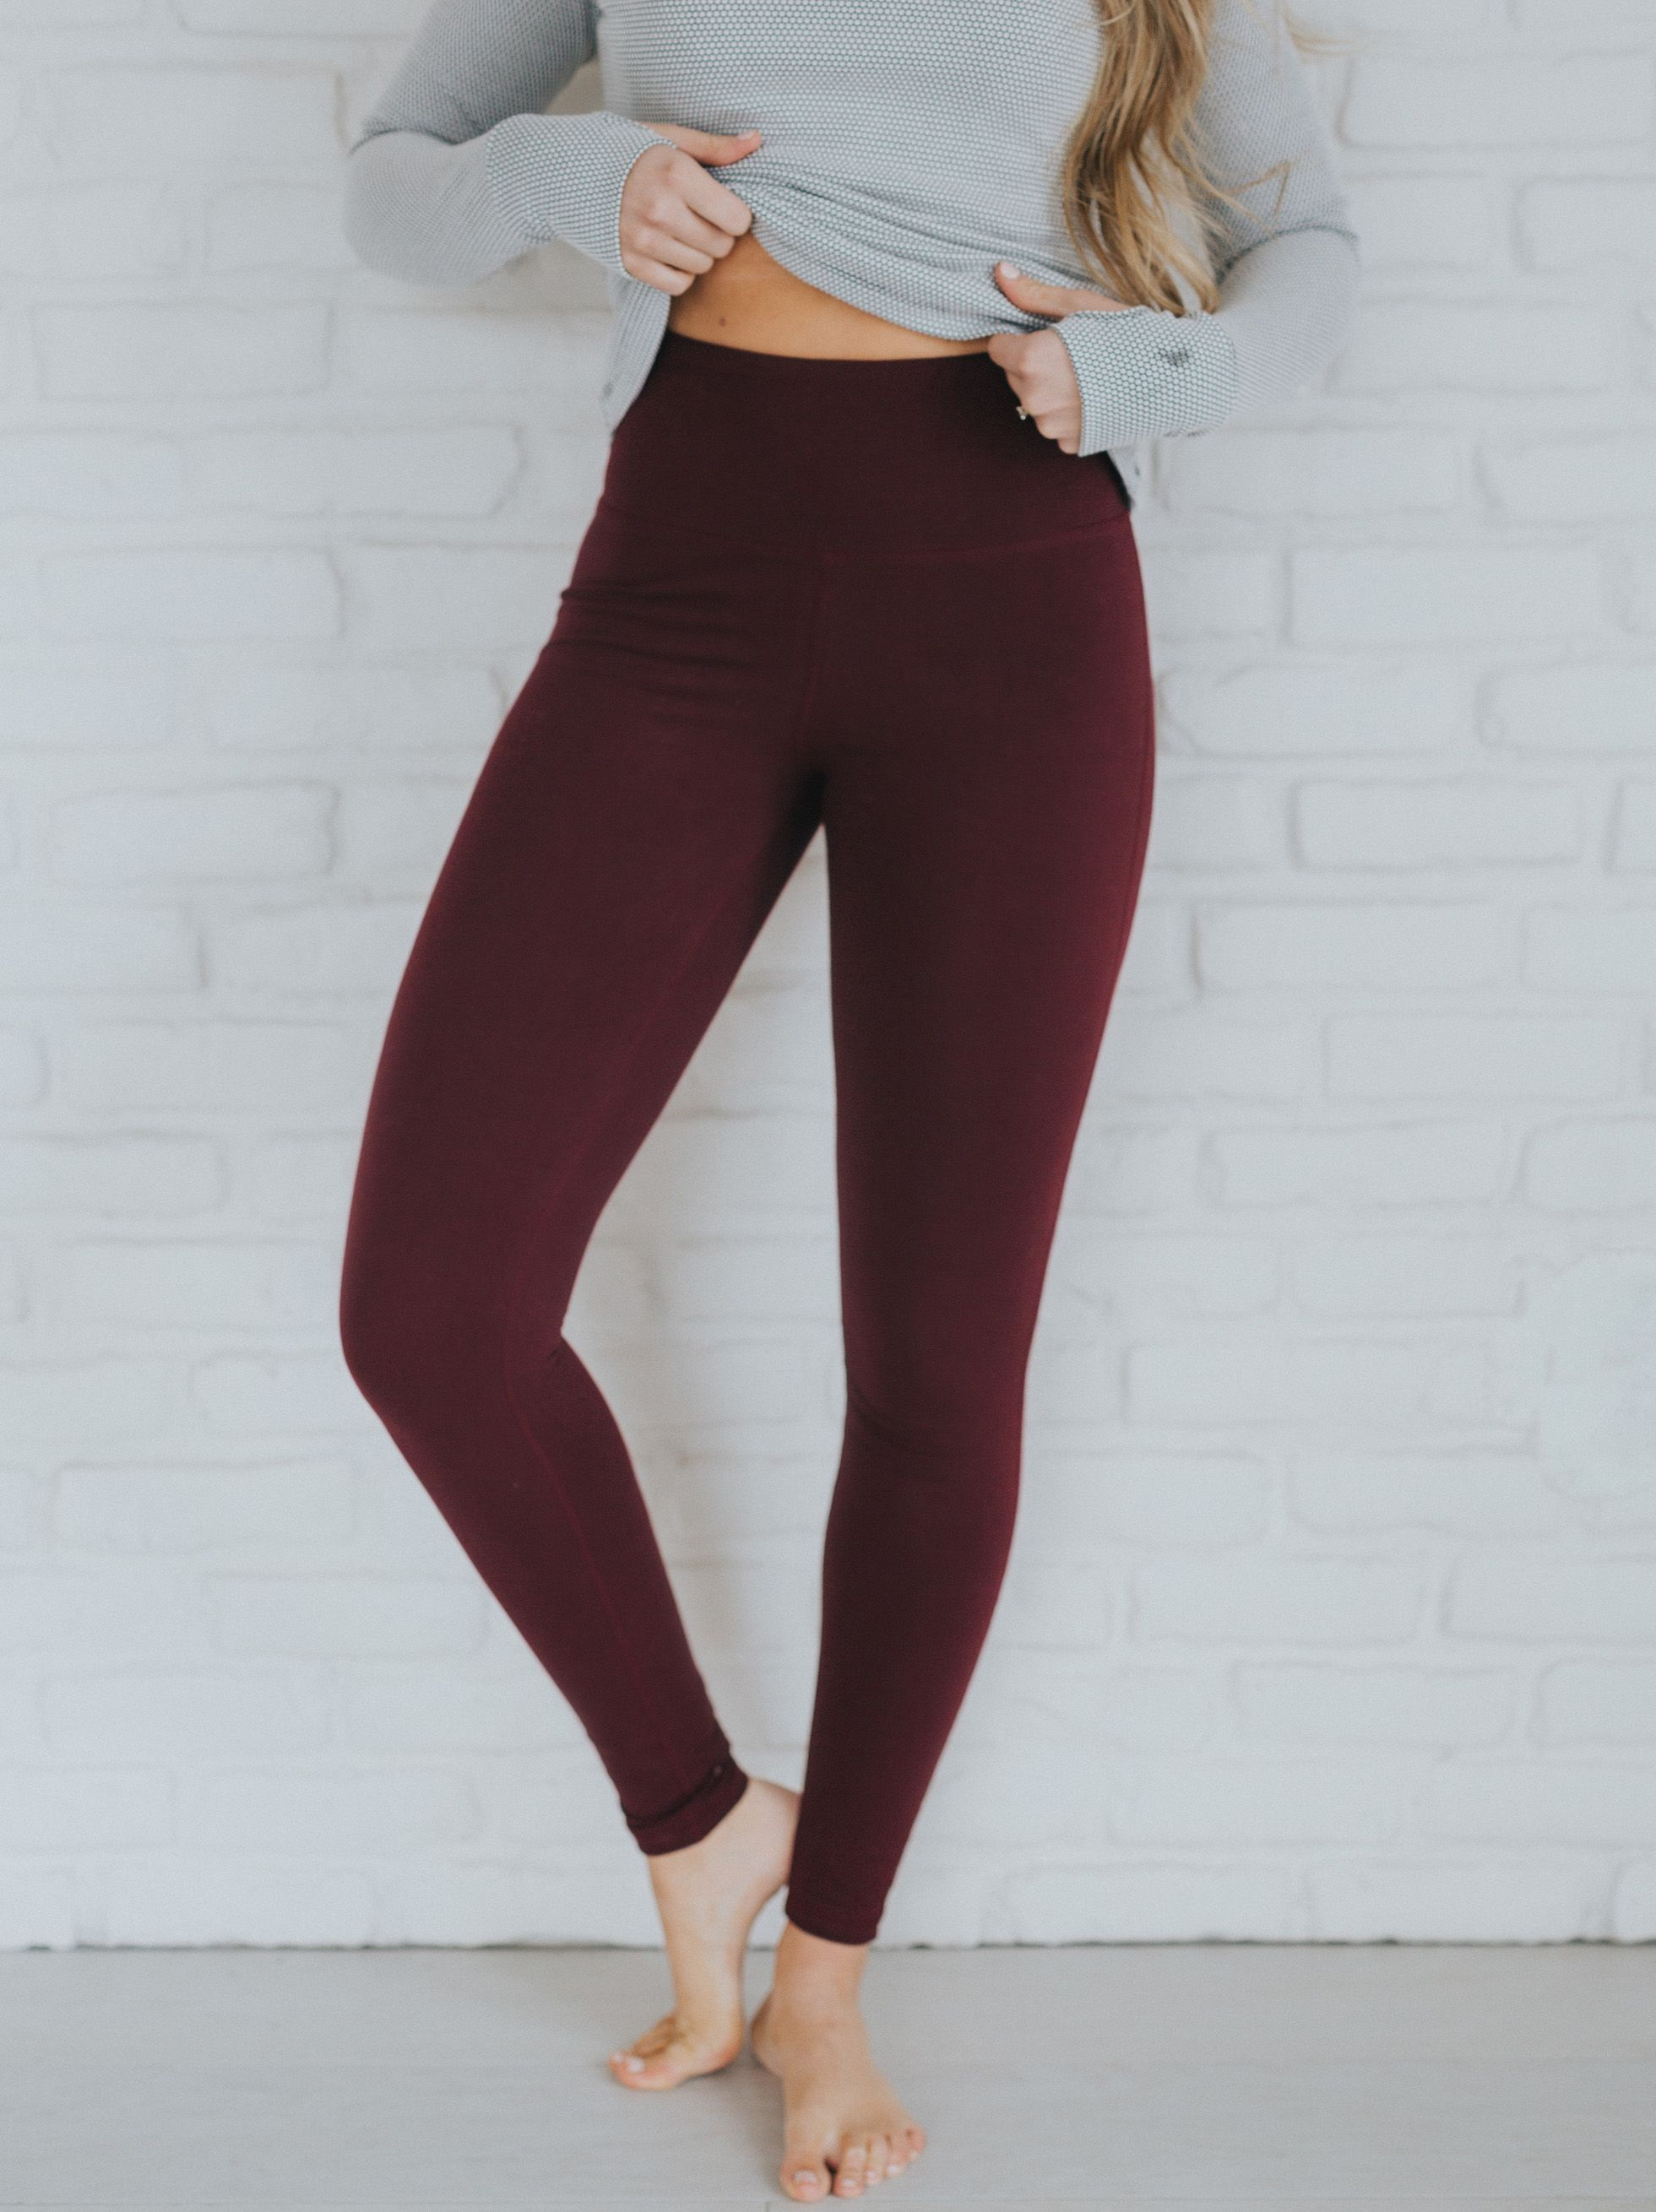 1c84f18efedd1 NEW High Waisted Wine Leggings! These are slimming, flattering, comfortable  and the BEST winter color! Hurry and grab these for the holidays!